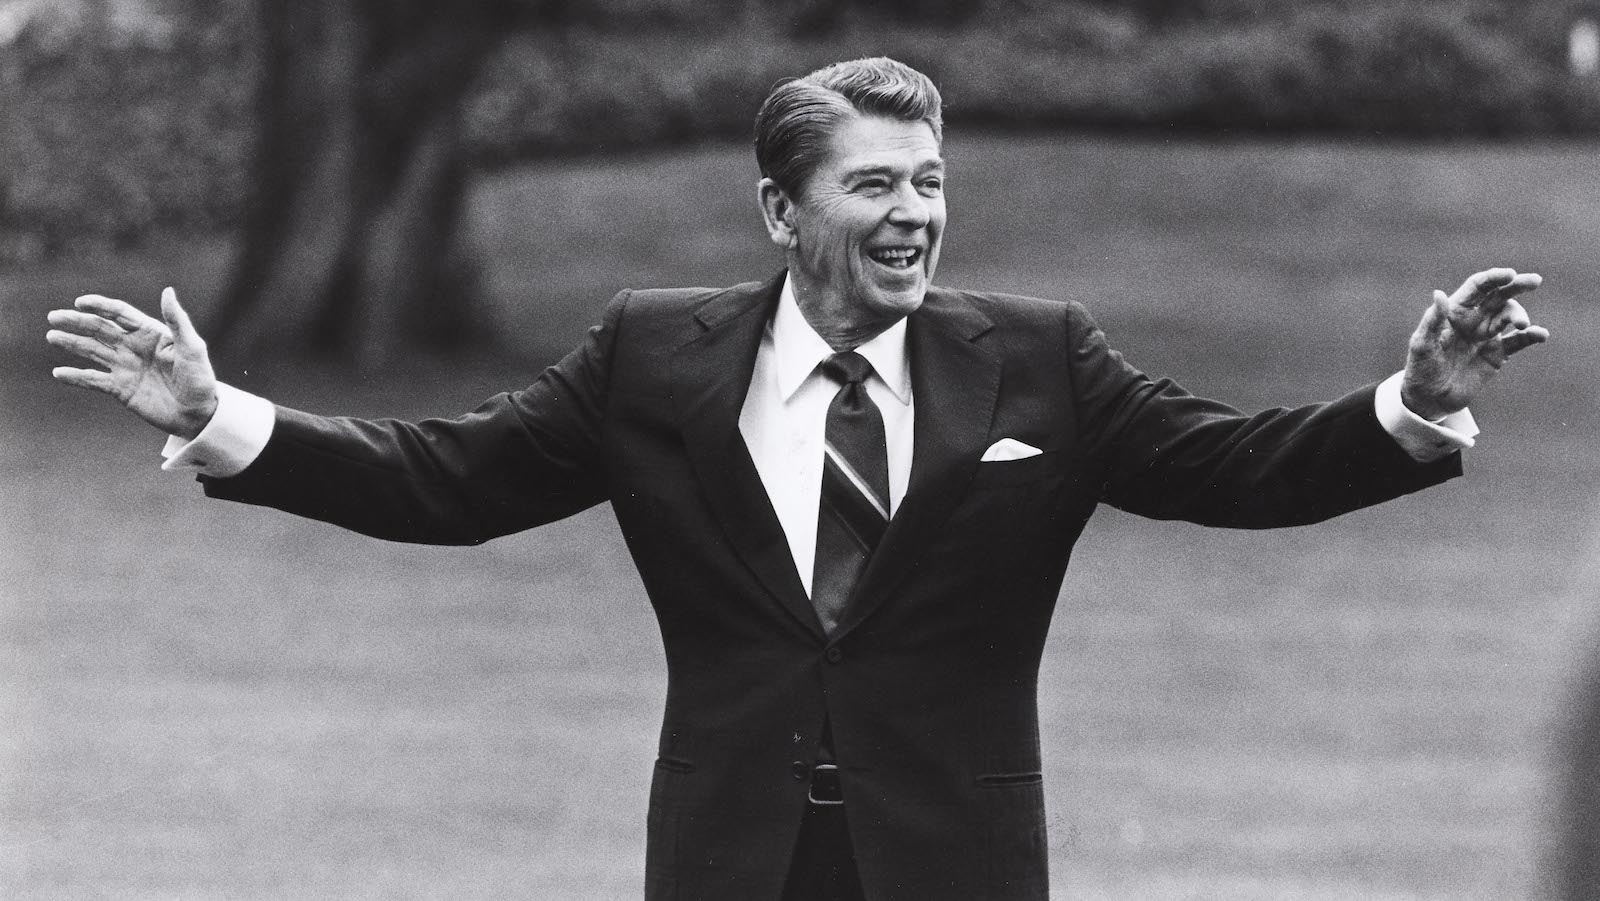 Former U.S. President Ronald Reagan, who forged a conservative revolution that transformed American politics, died on June 5, 2004 after a decade-long battle with Alzheimer's disease, U.S. media reported. Reagan is pictured waving to well-wishers on the south lawn of the White House on April 25, 1986, before departing for a summit in Tokyo.